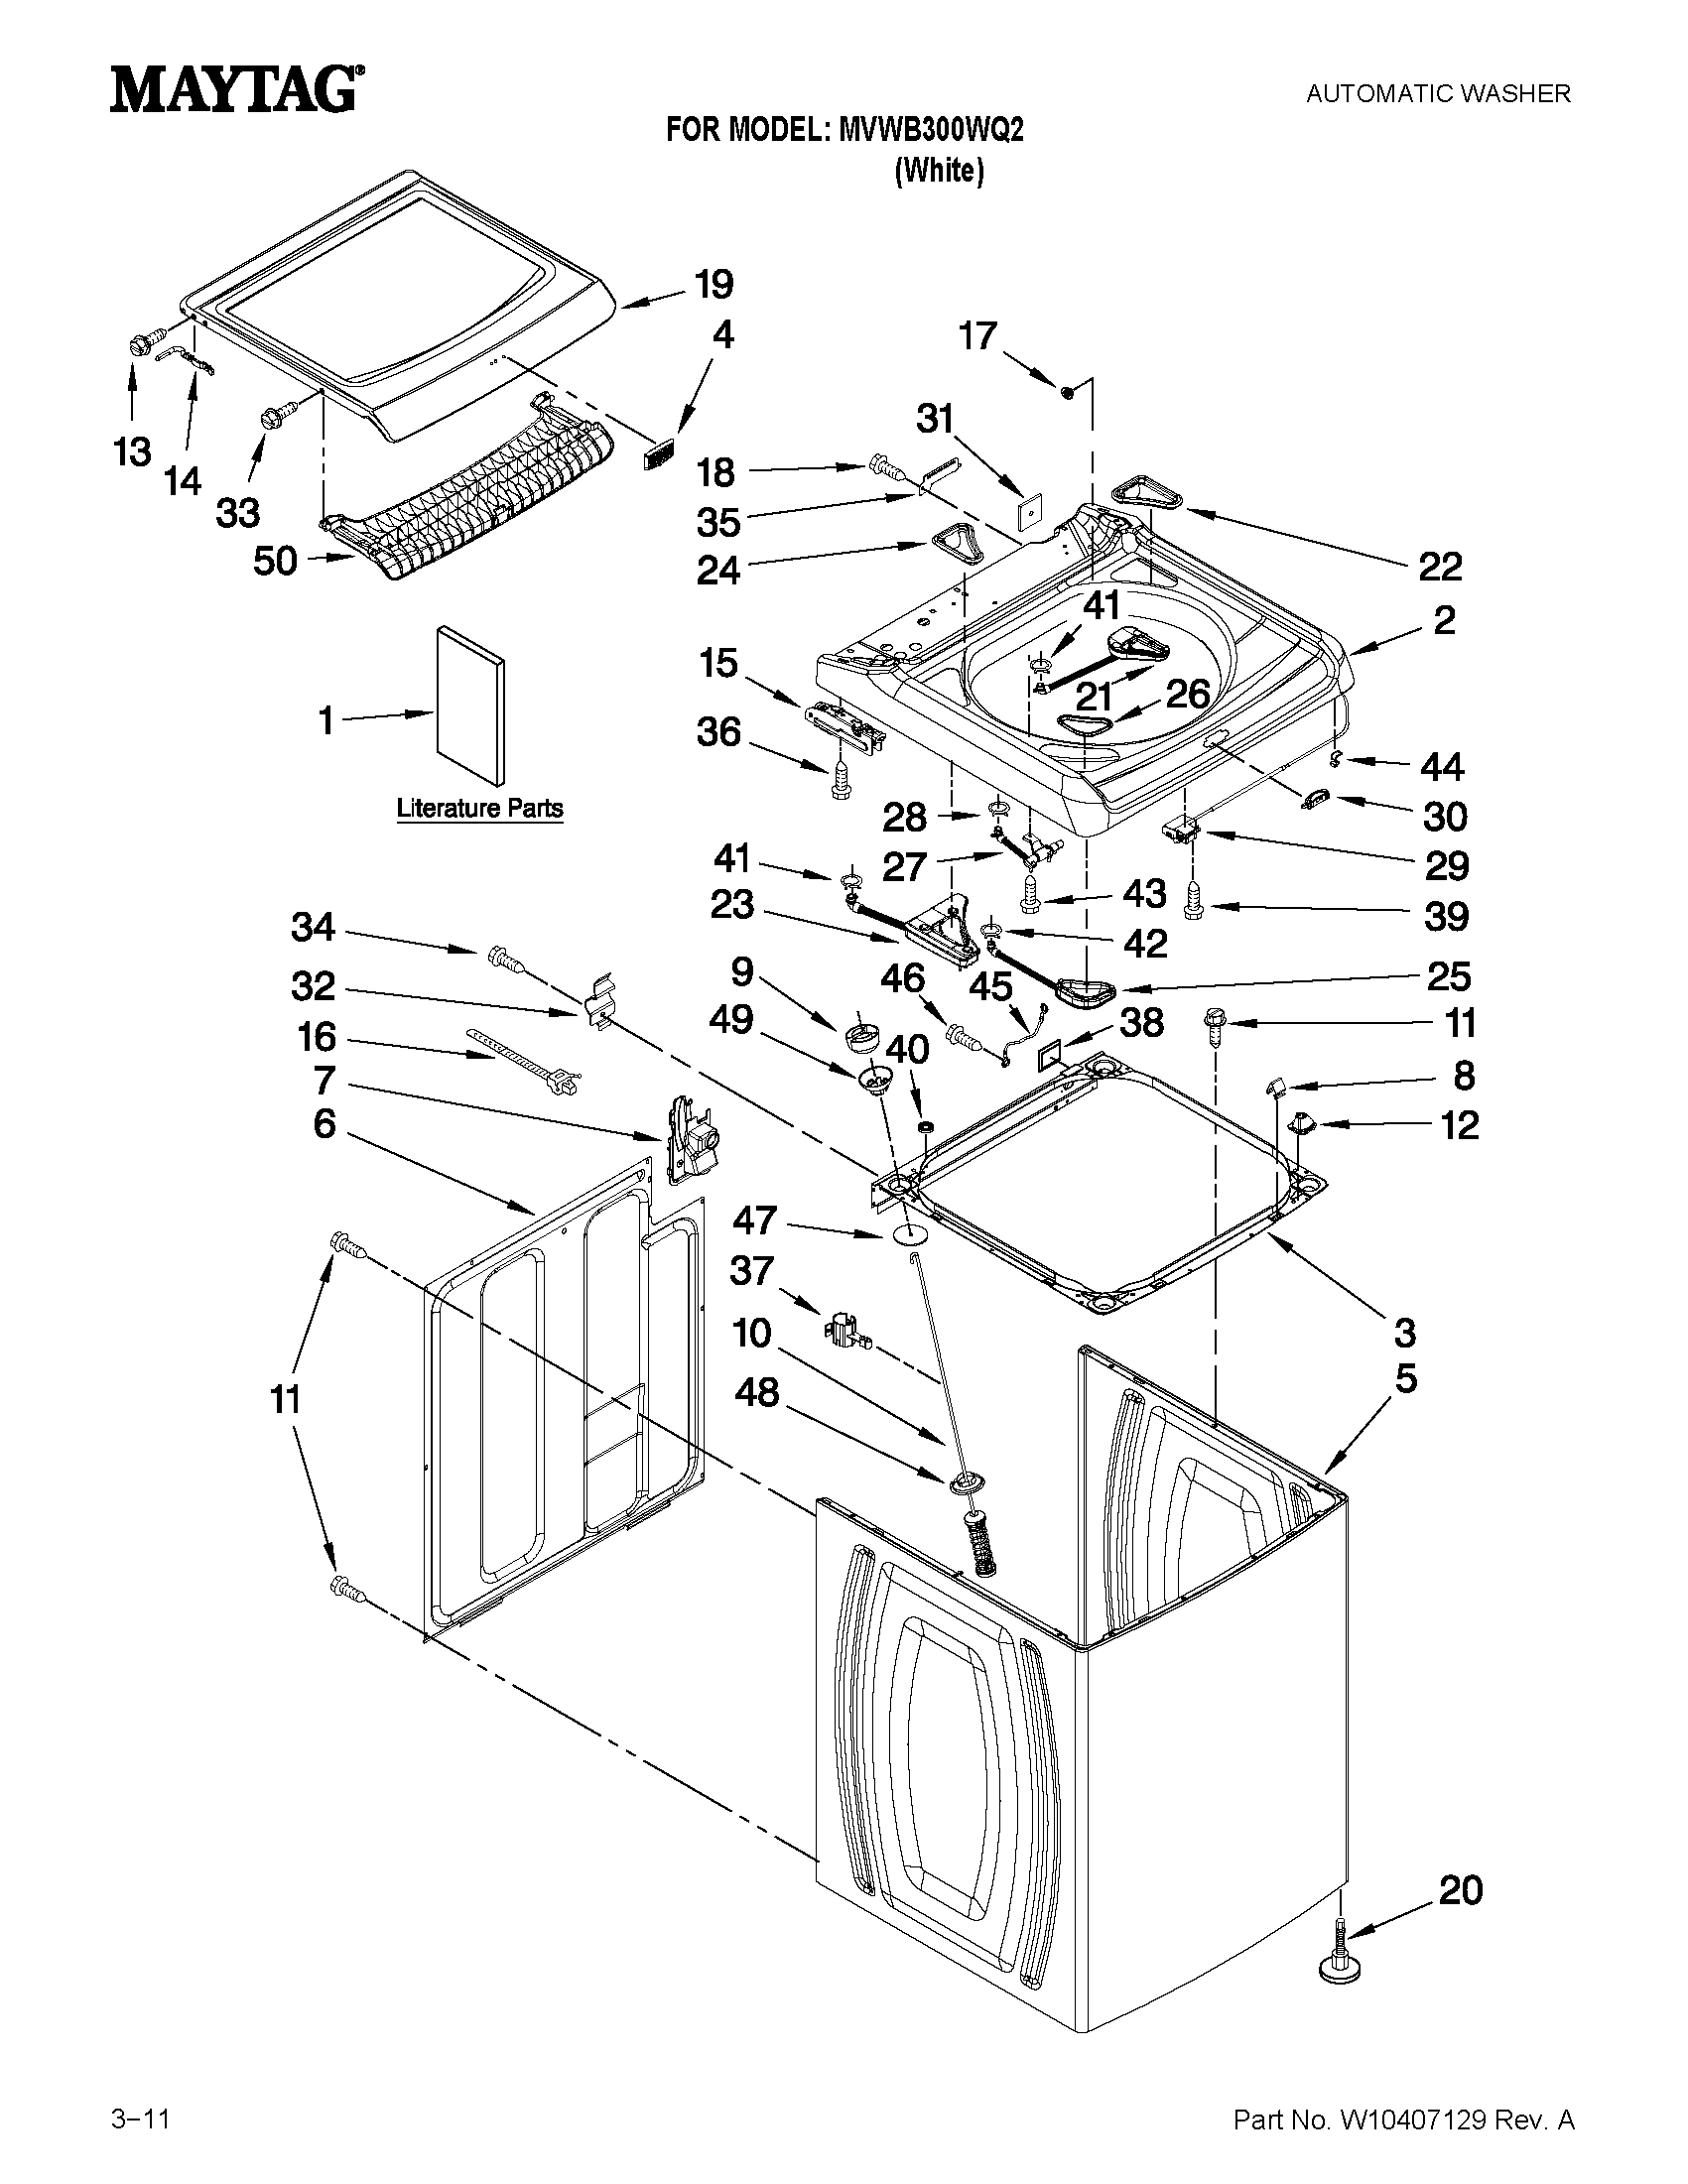 diagram and parts list for maytag washerparts model mvwc6esww1